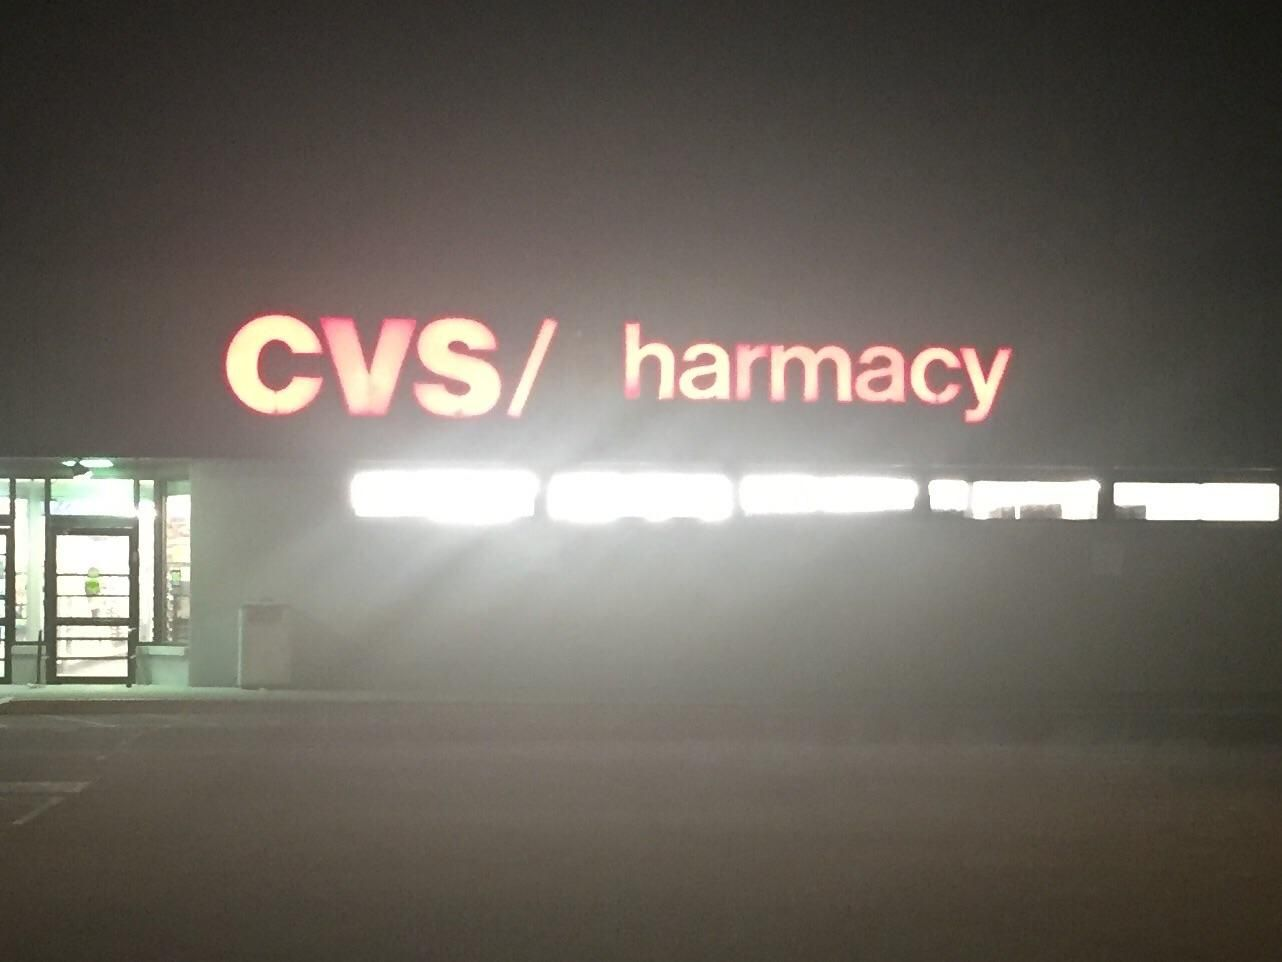 I'm having second thoughts about filling my prescription...